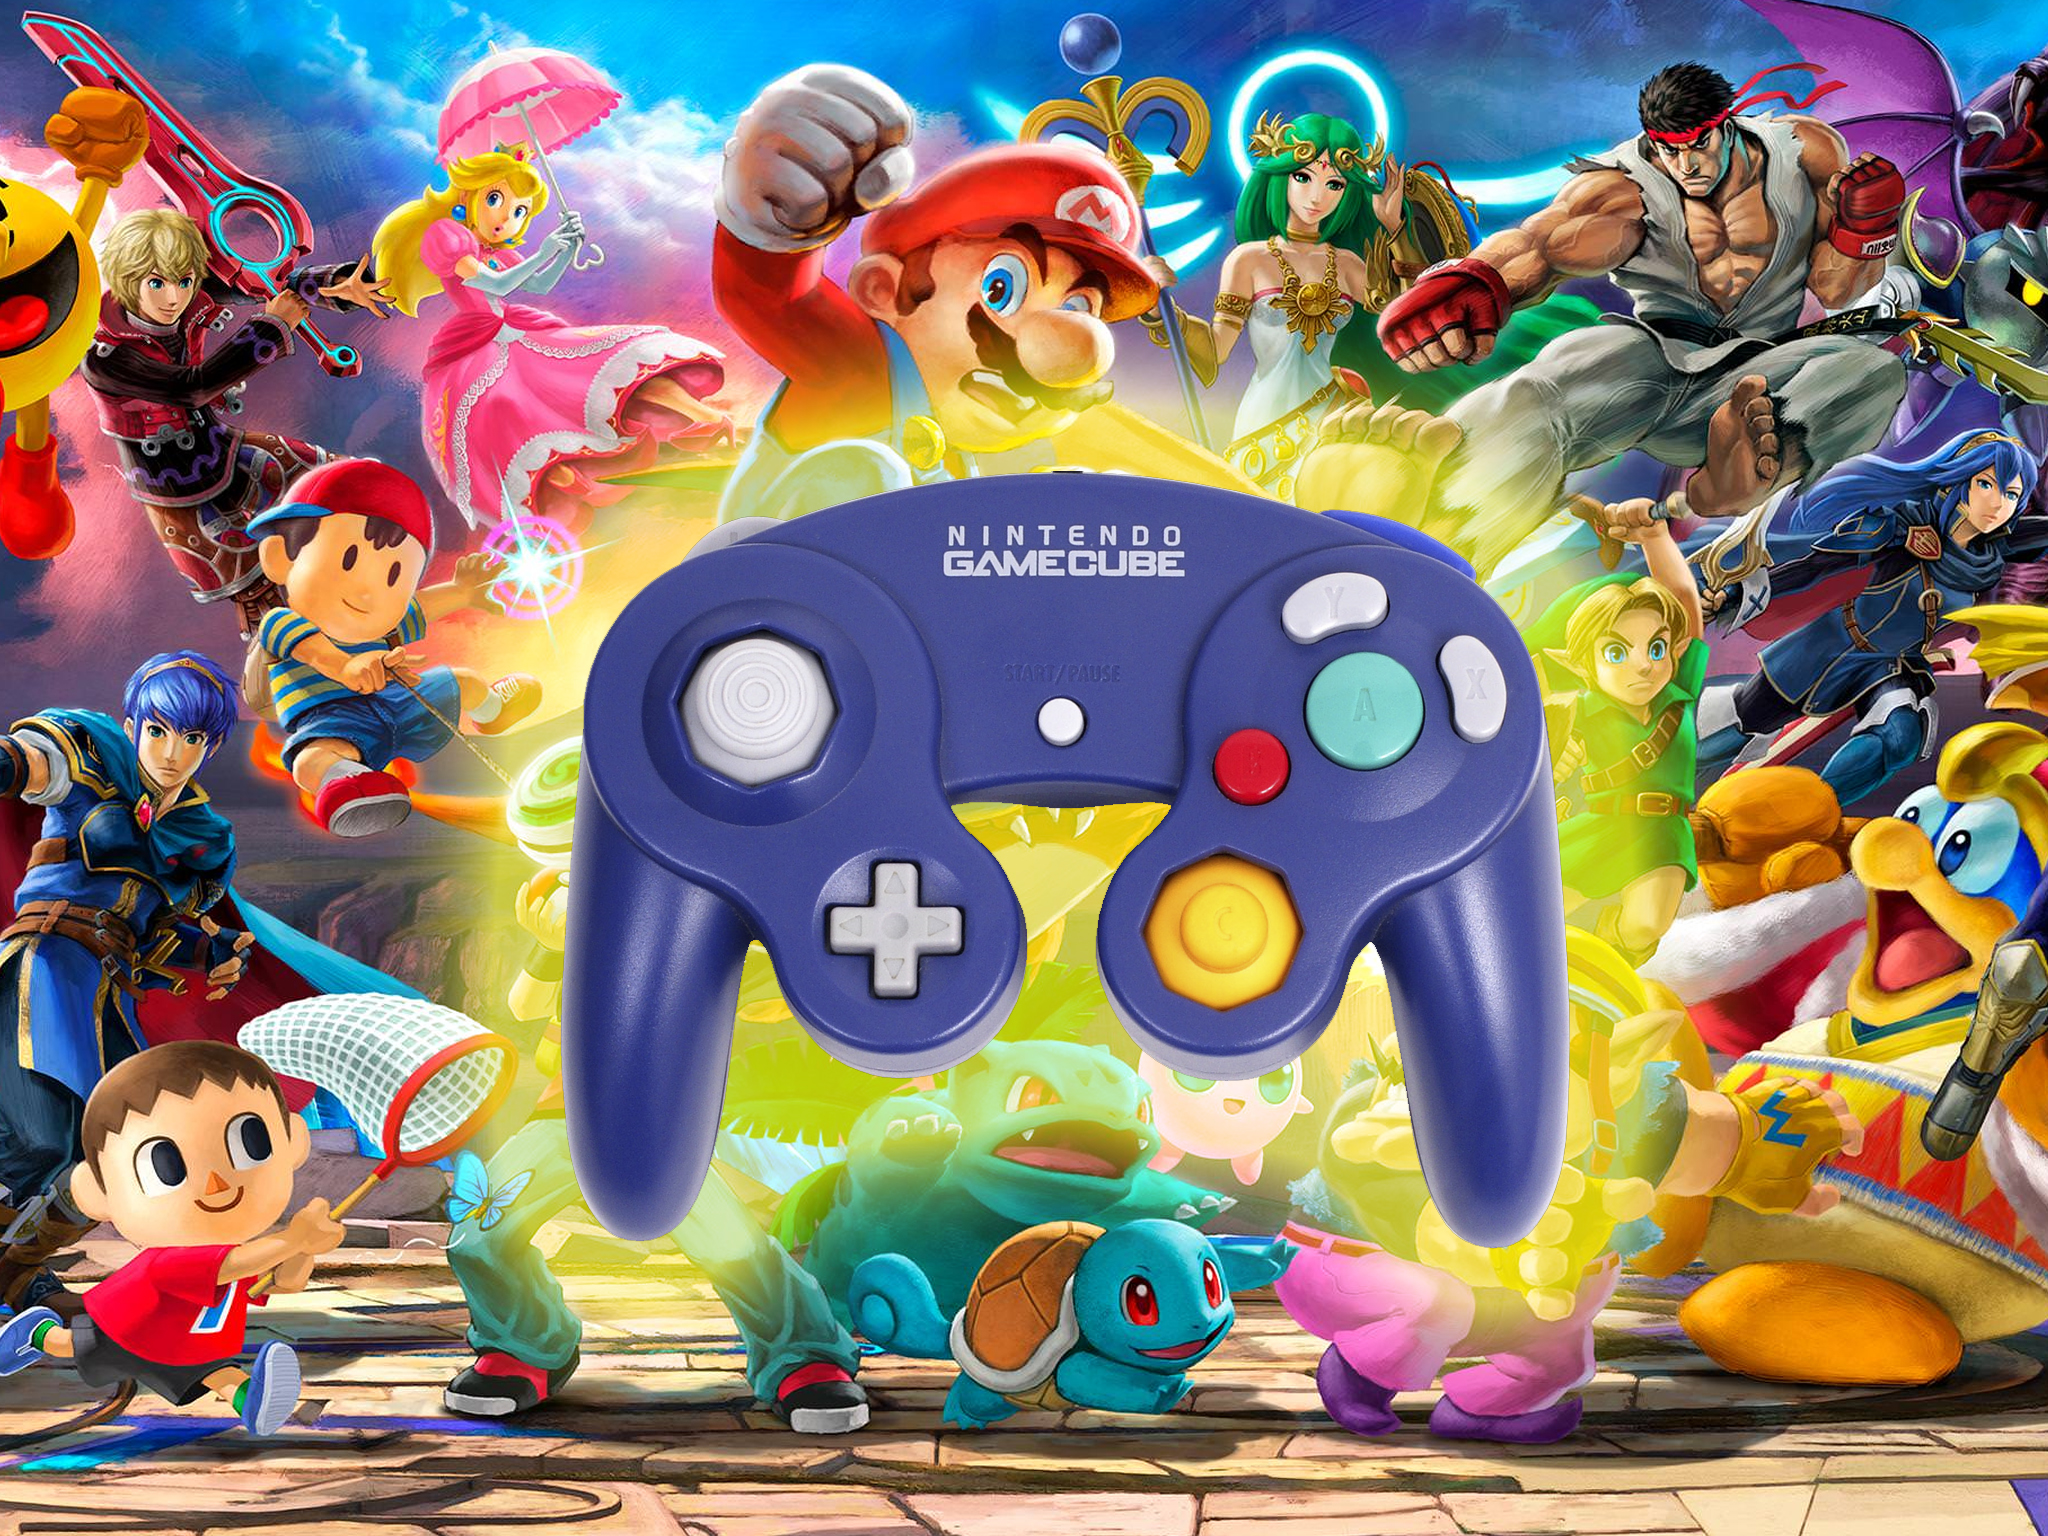 Best Nintendo Switch controllers for Super Smash Bros  Ultimate   iMore Super Smash Bros  Ultimate is thundering toward its release on Nintendo  Switch this coming December  As Switch owners are getting all hyped up for  the day